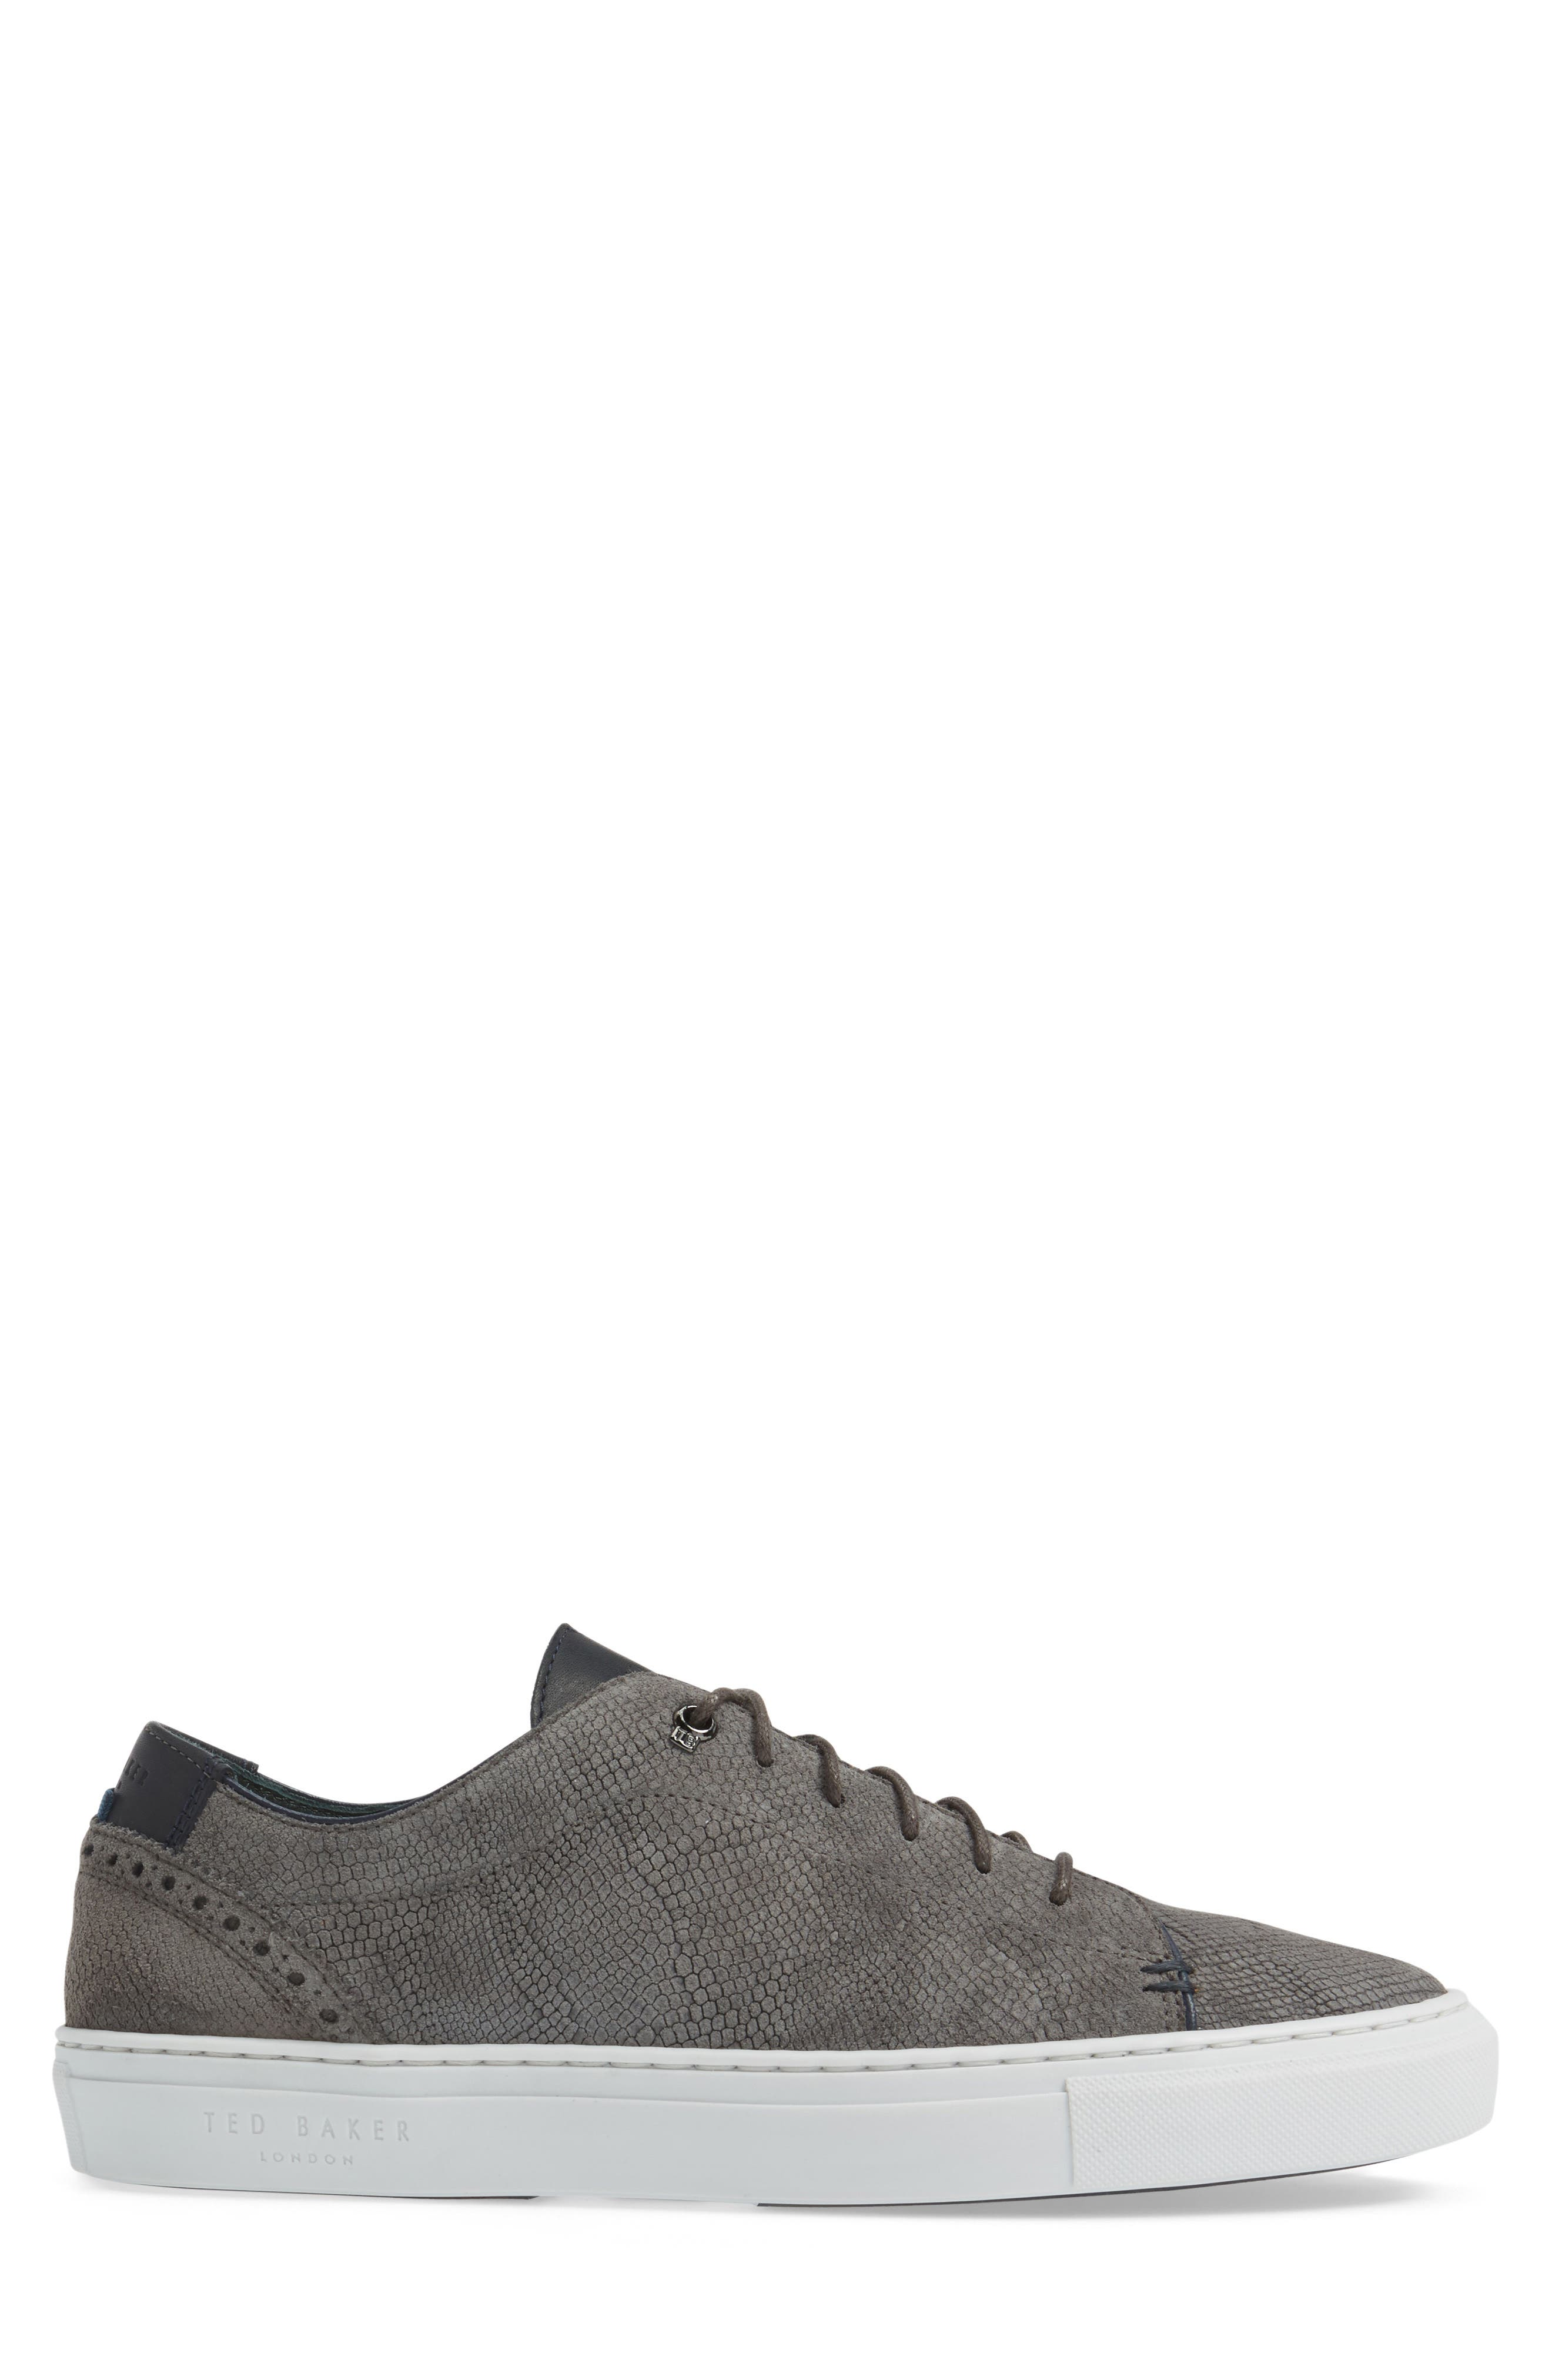 Duke Snake Embossed Sneaker,                             Alternate thumbnail 3, color,